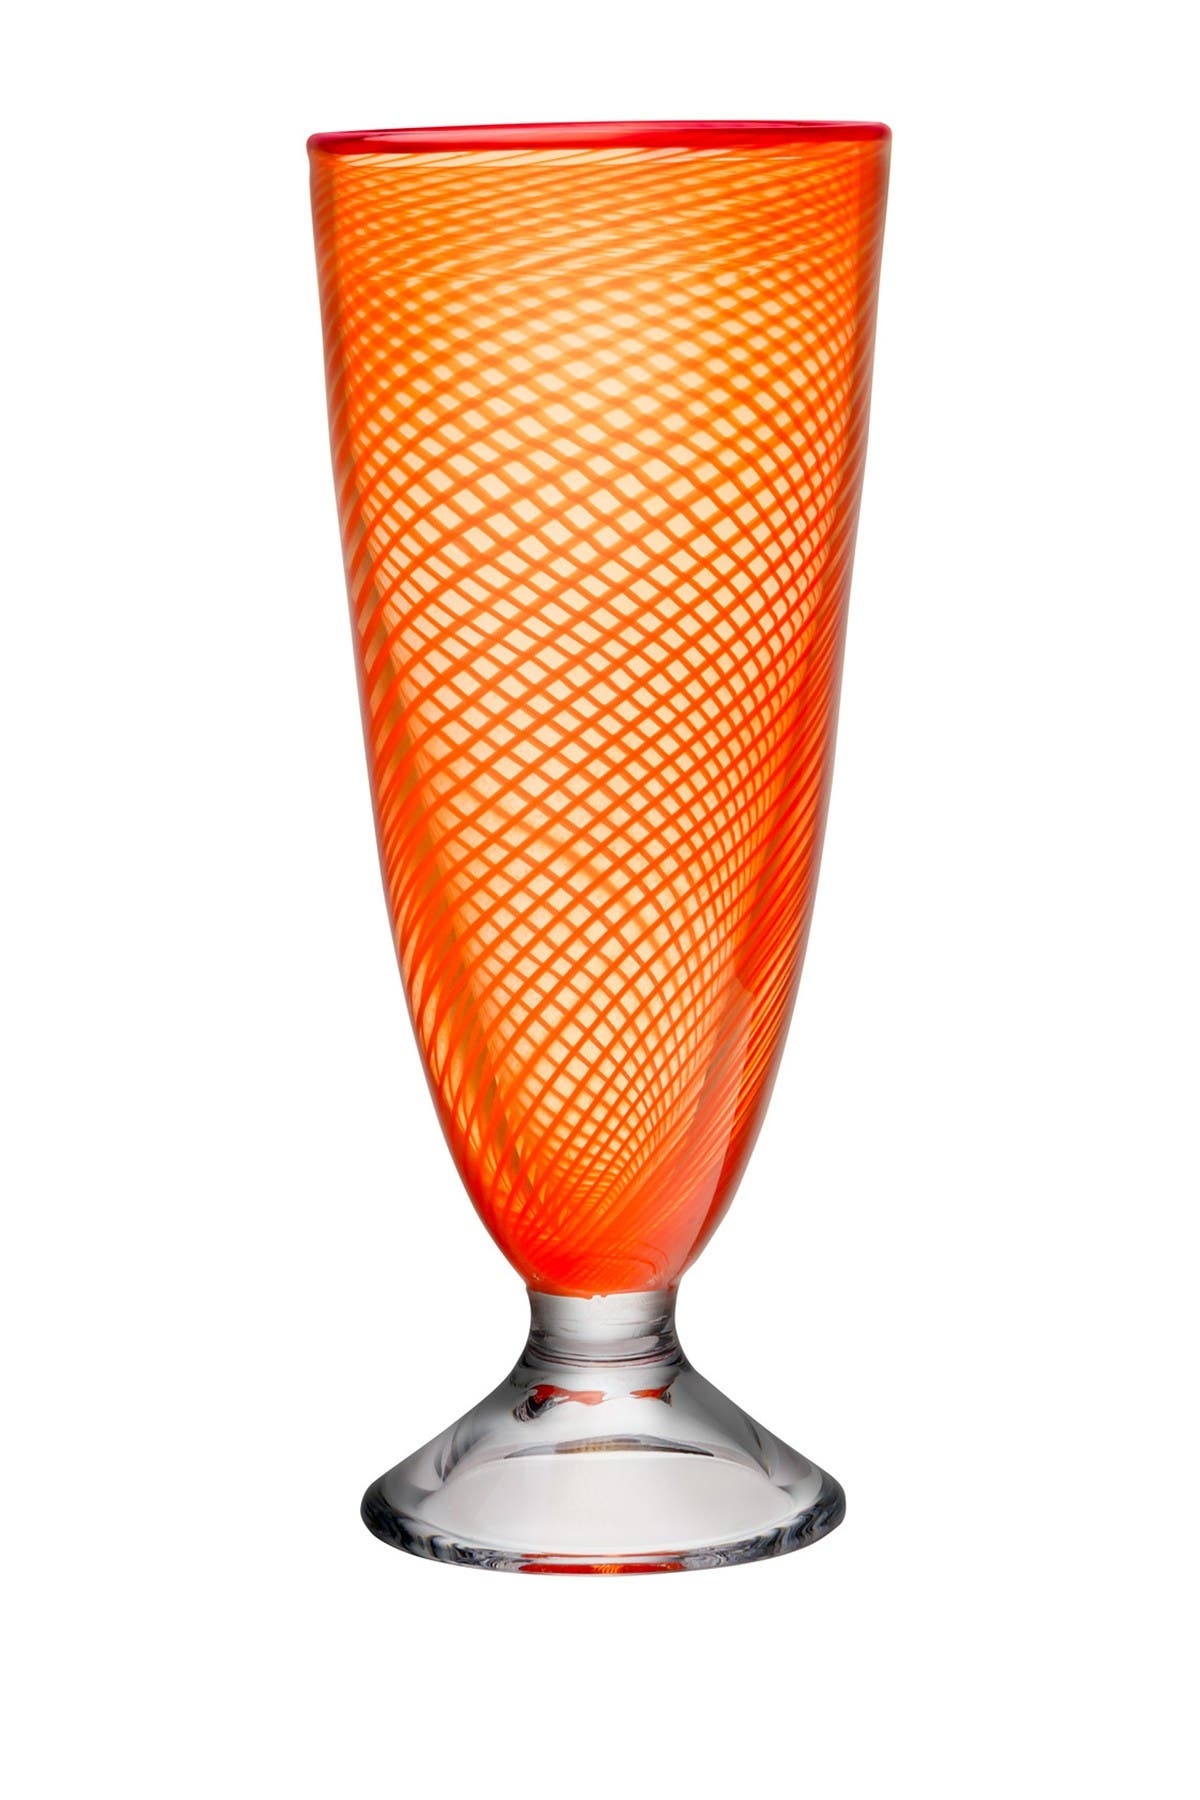 """Image of Kosta Boda Orange Footed Vase with A Red Rim, 10.5""""H"""